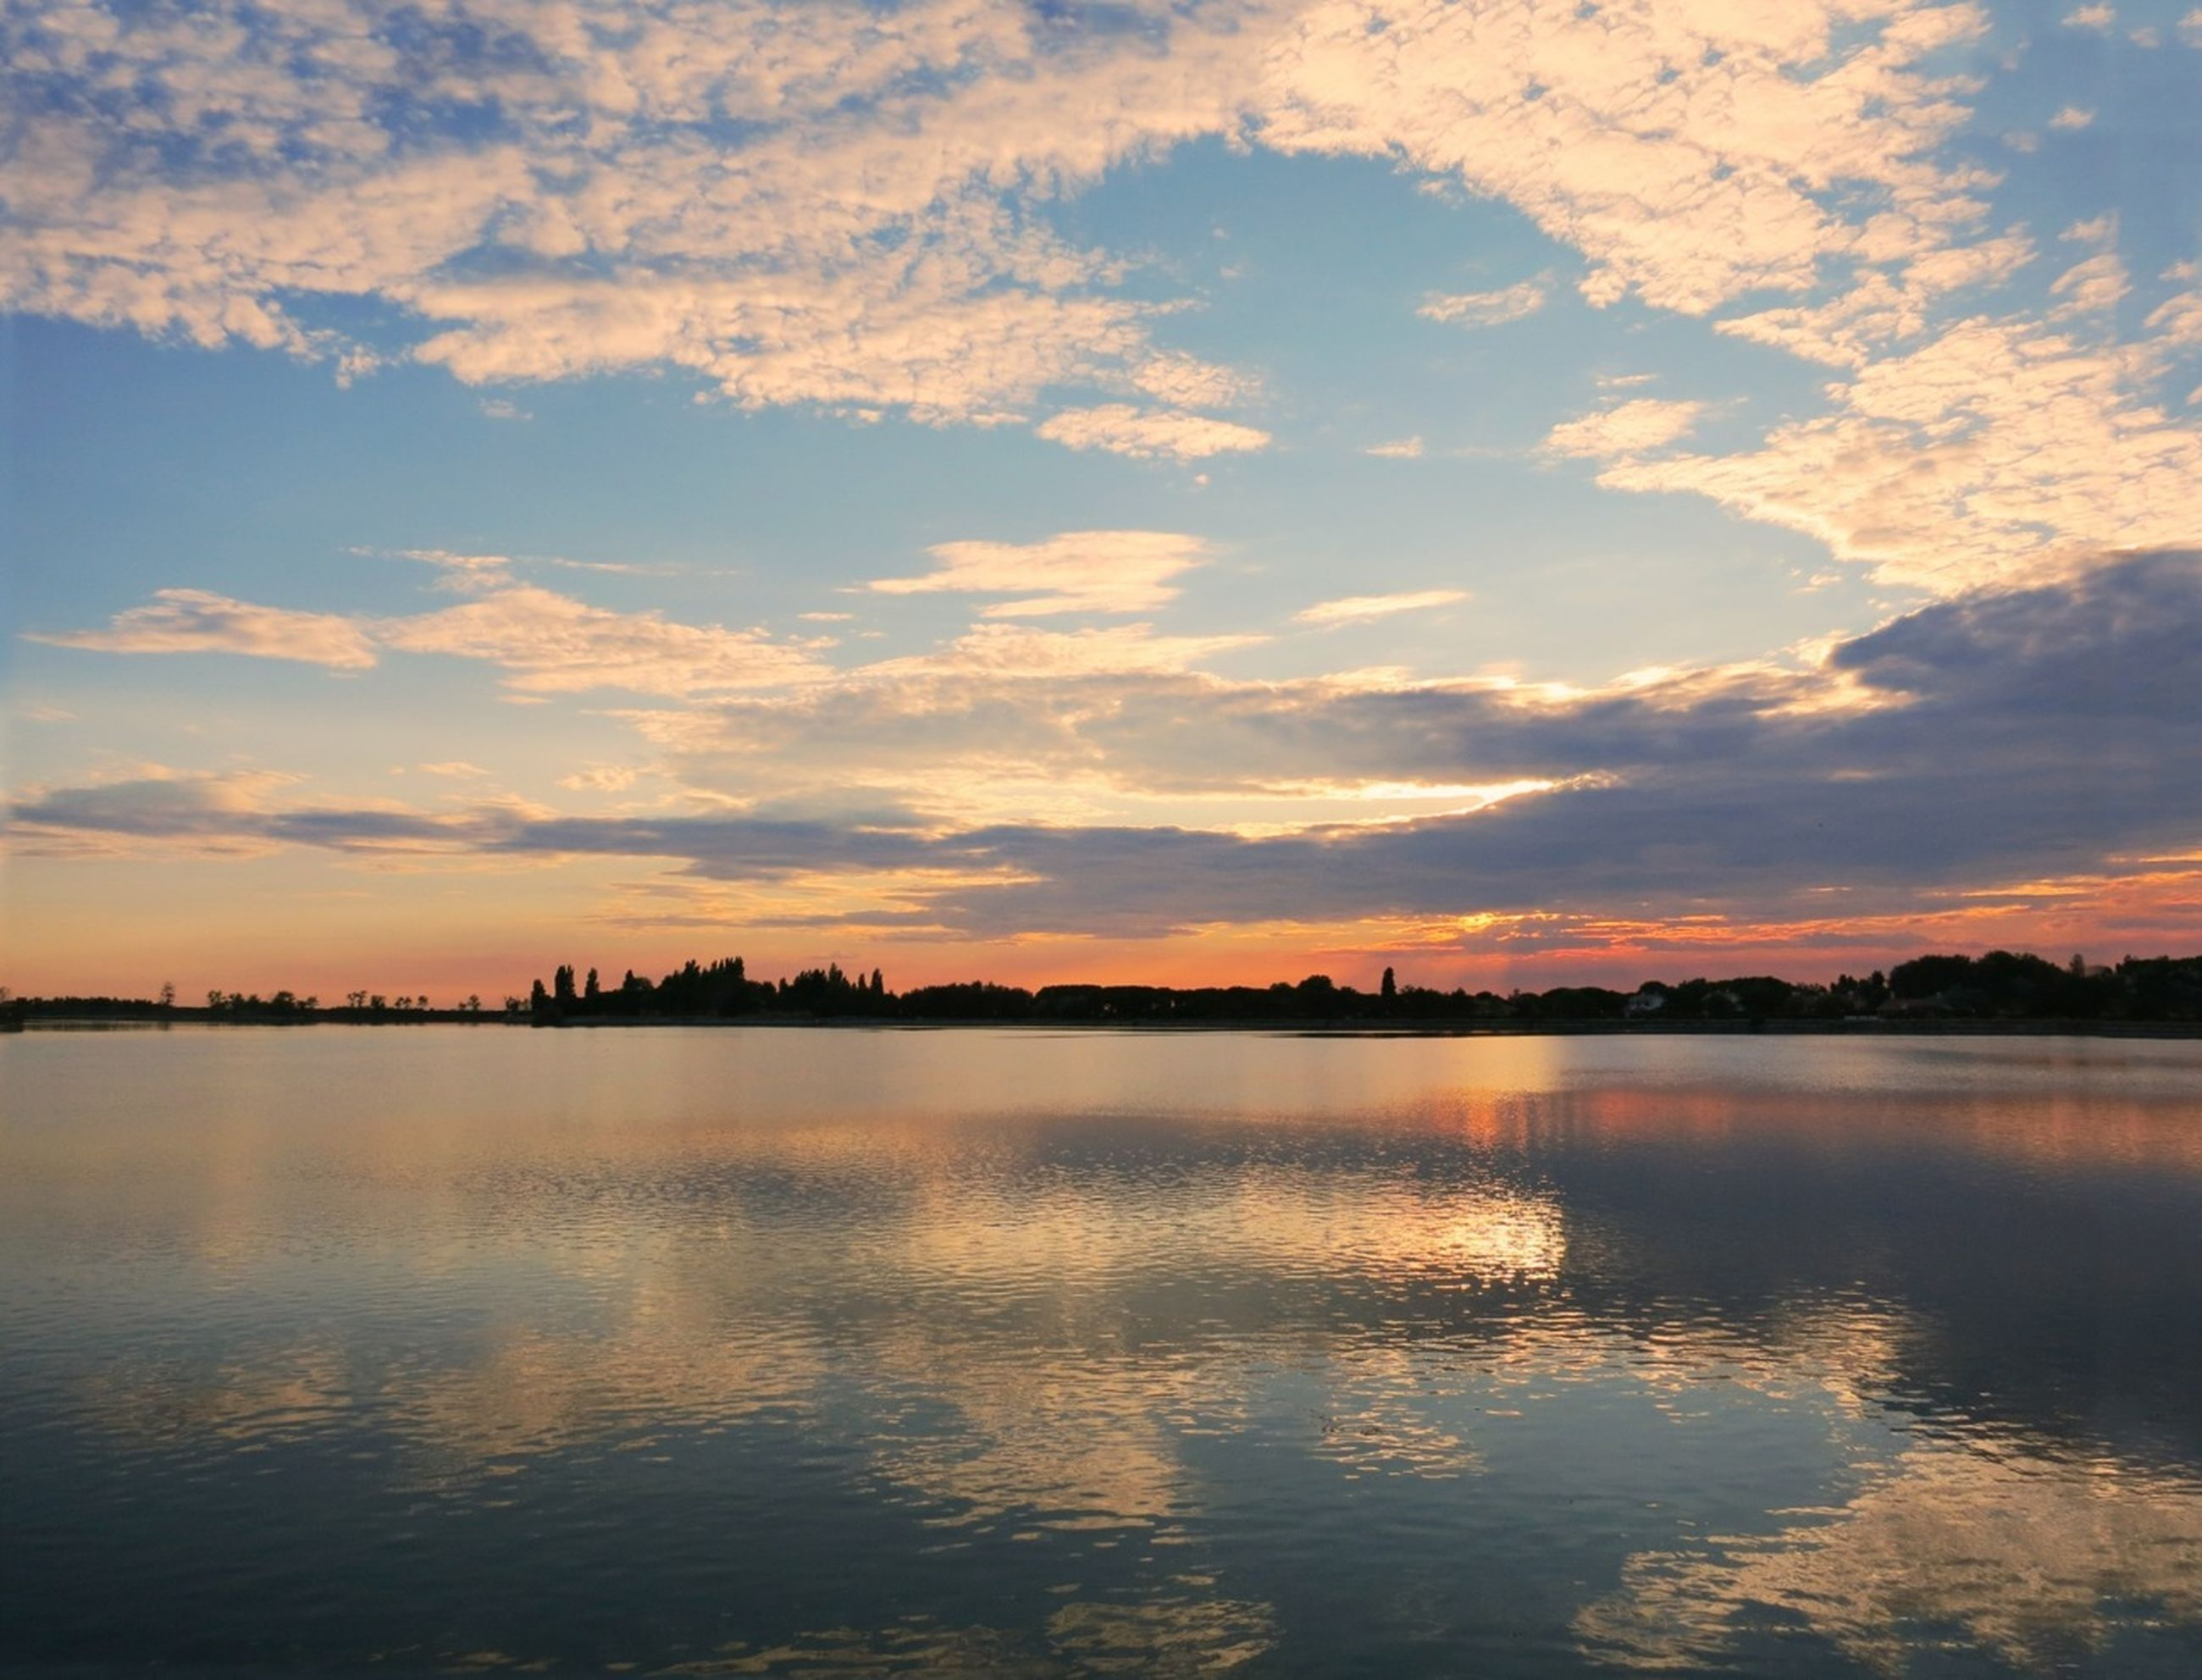 water, sunset, sky, waterfront, tranquil scene, scenics, tranquility, cloud - sky, reflection, beauty in nature, cloud, lake, idyllic, nature, silhouette, cloudy, sea, orange color, rippled, outdoors